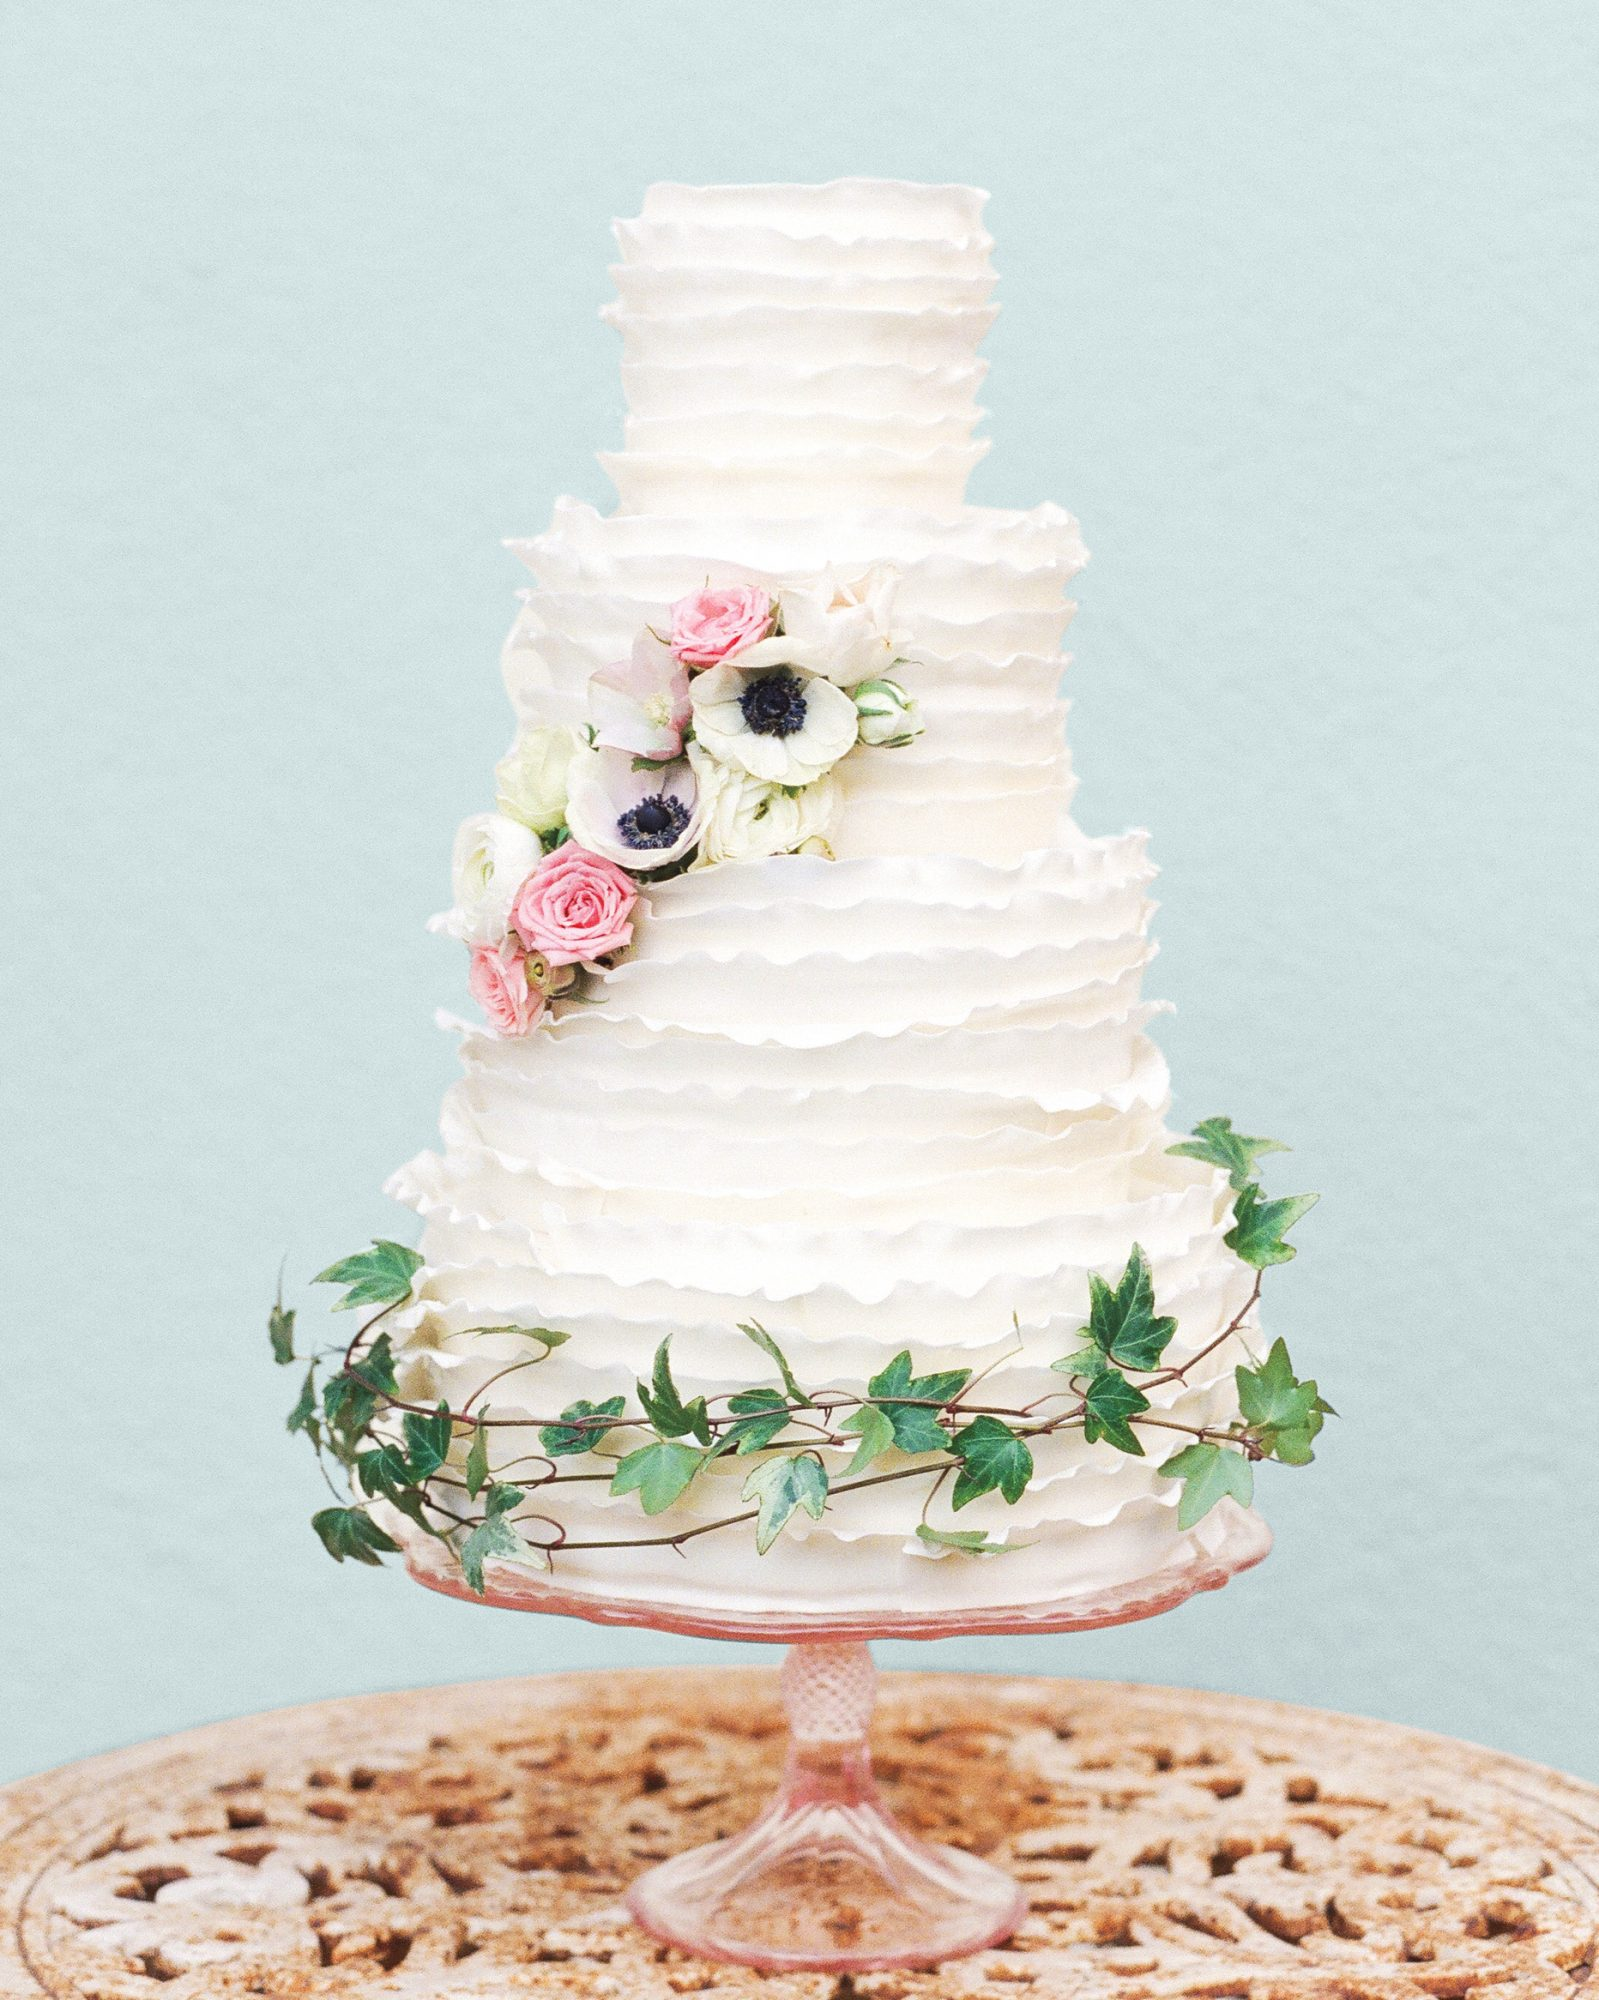 Pink roses and white anemones adorned this deckle-edge wedding cake created by Cake Fanatics. While this dessert was made for a tropical Hawaiian wedding, it would be equally pretty for a classic celebration.